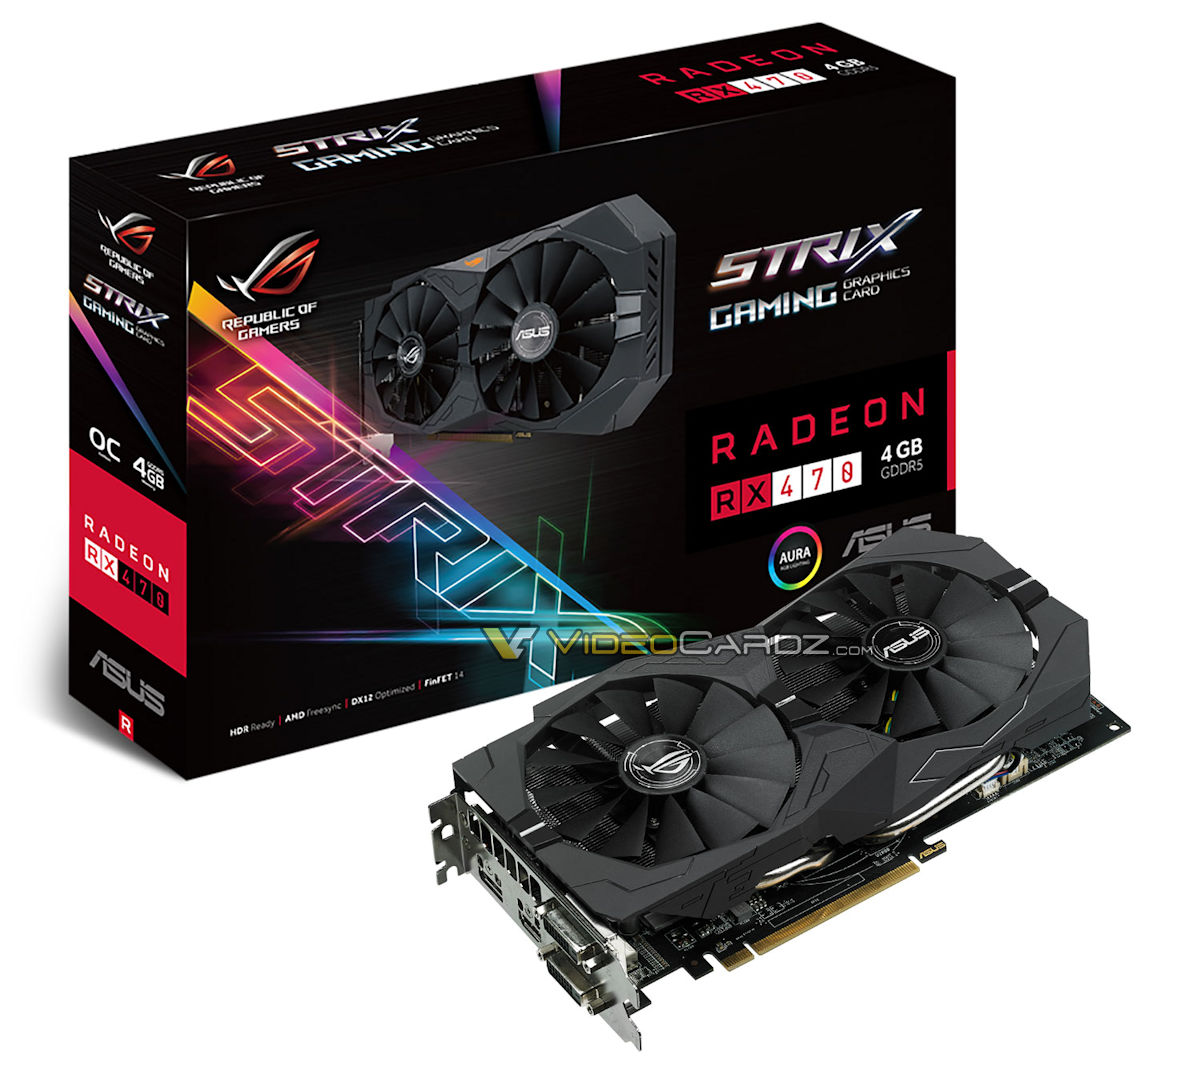 Aftermarket RX 470 and RX 460 GPUs pictured